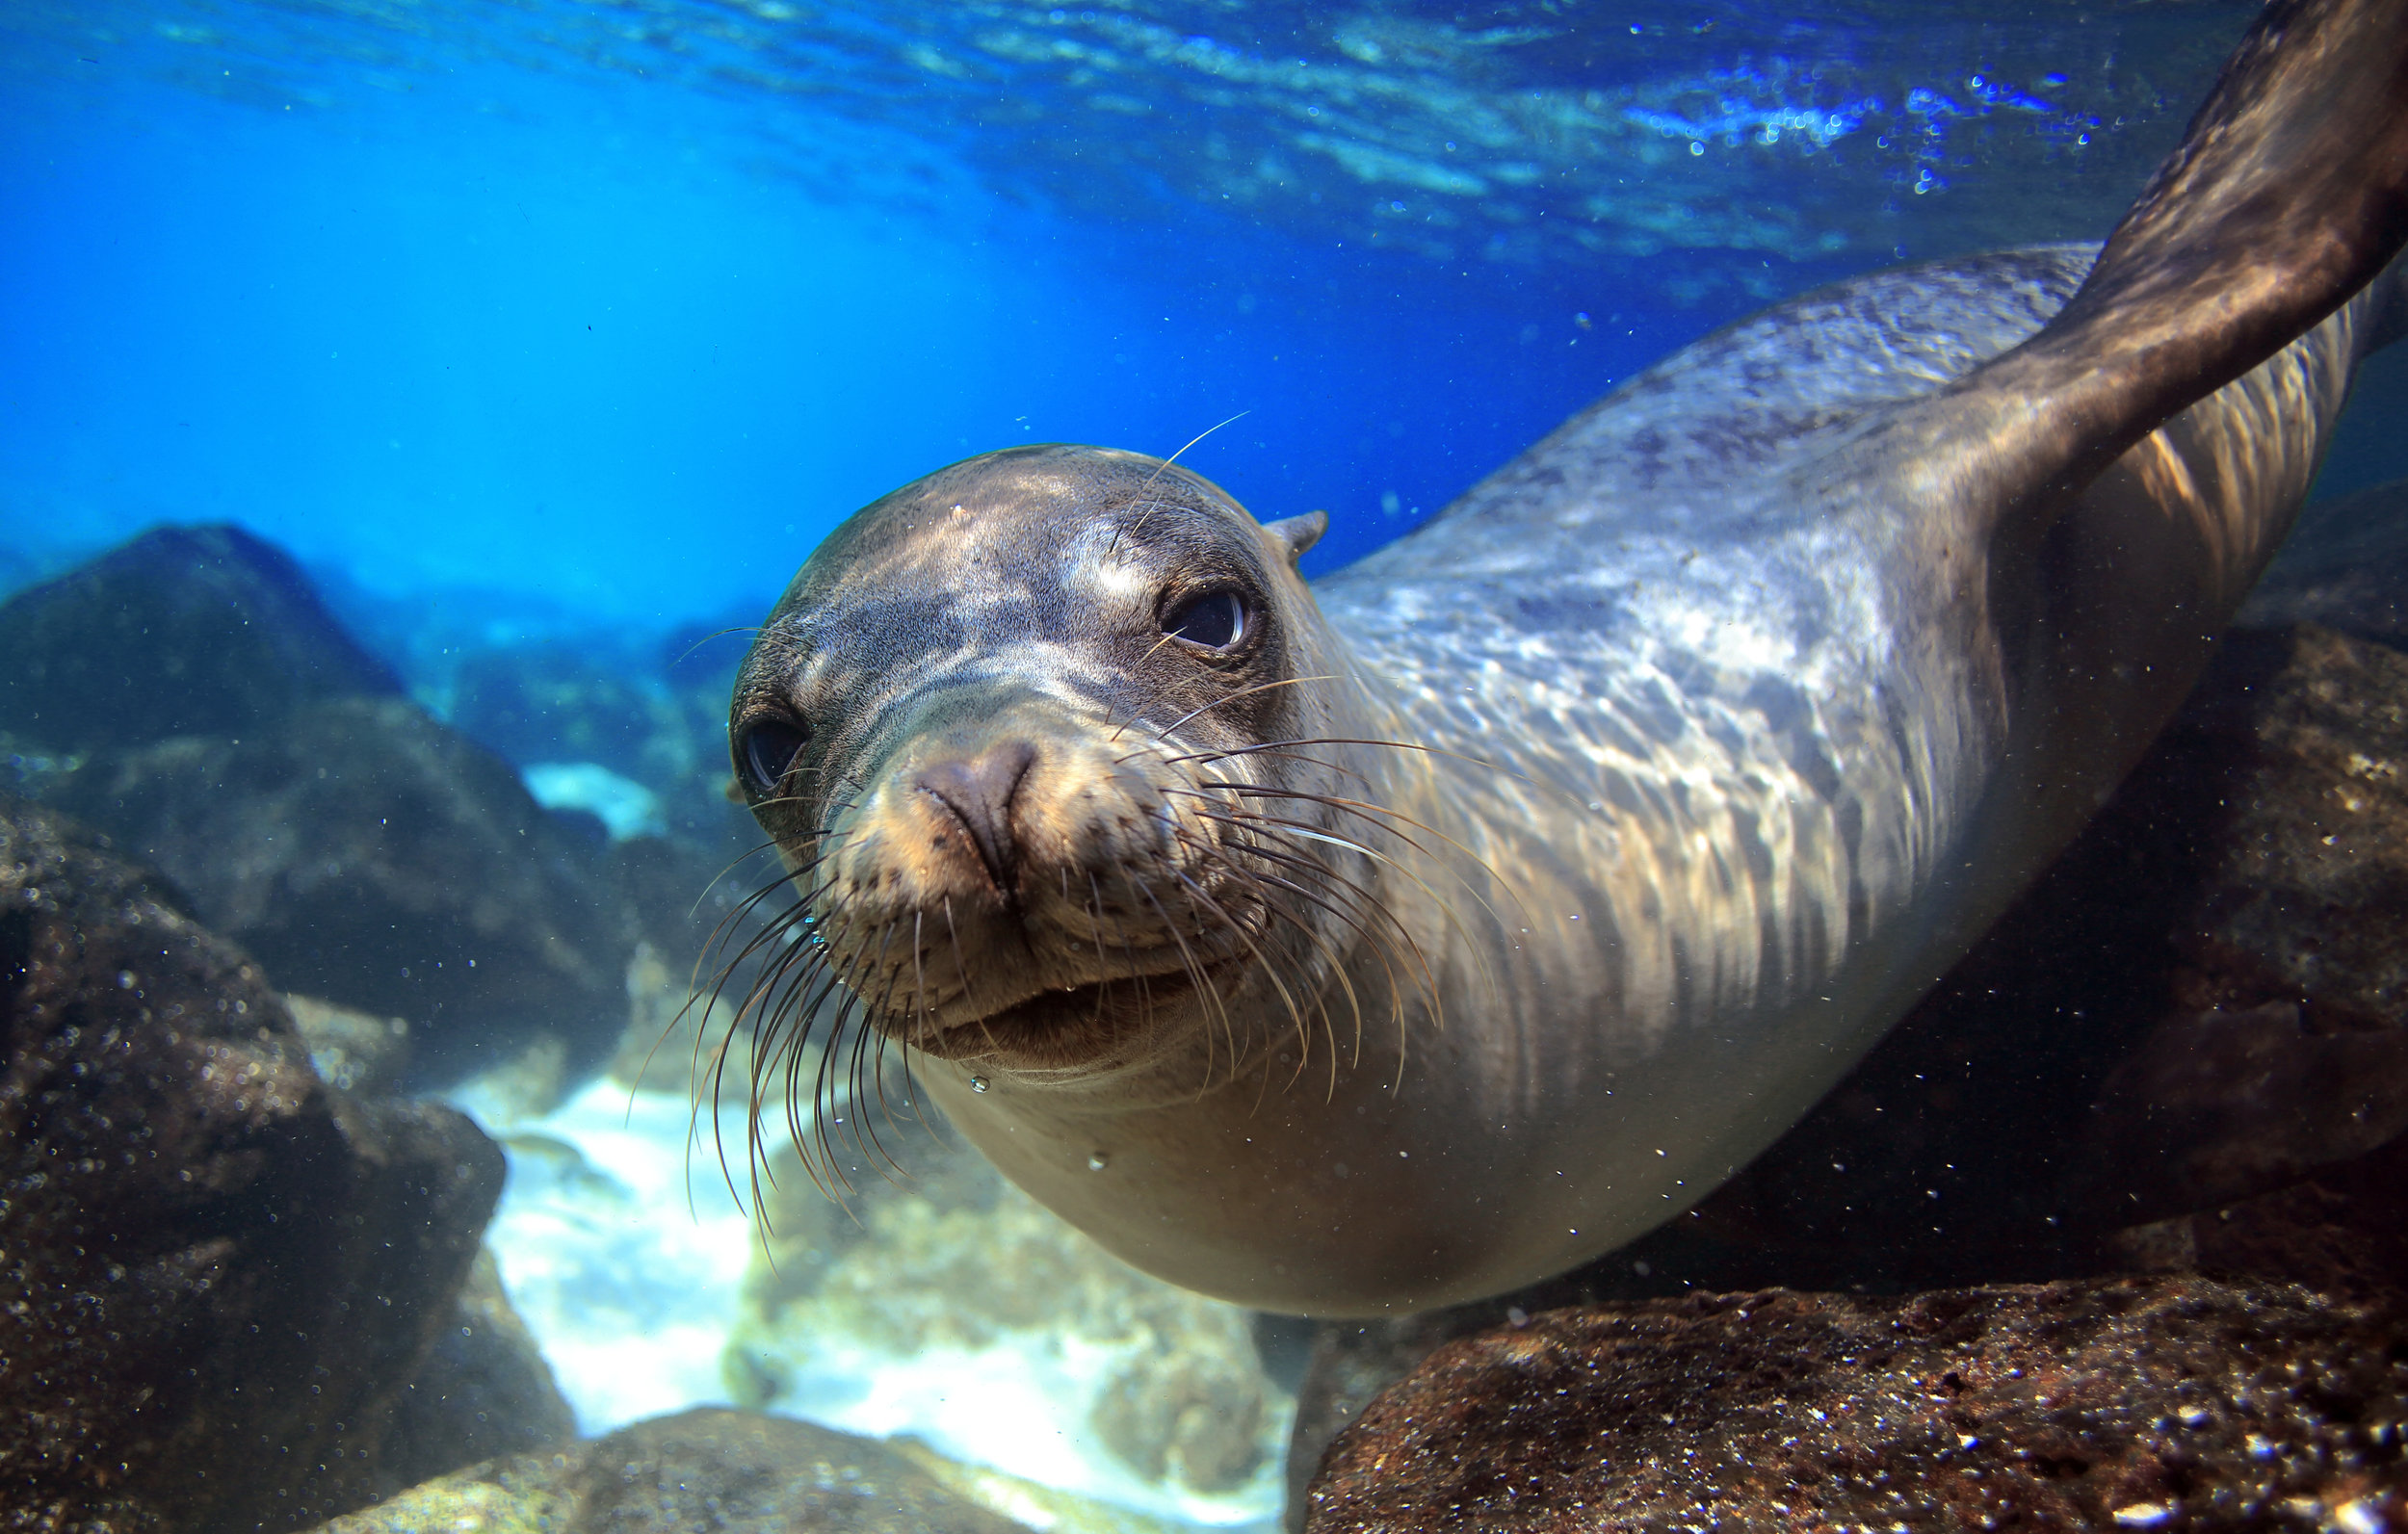 Sea lion swimming underwater in tidal lagoon in the Galapagos Islands.